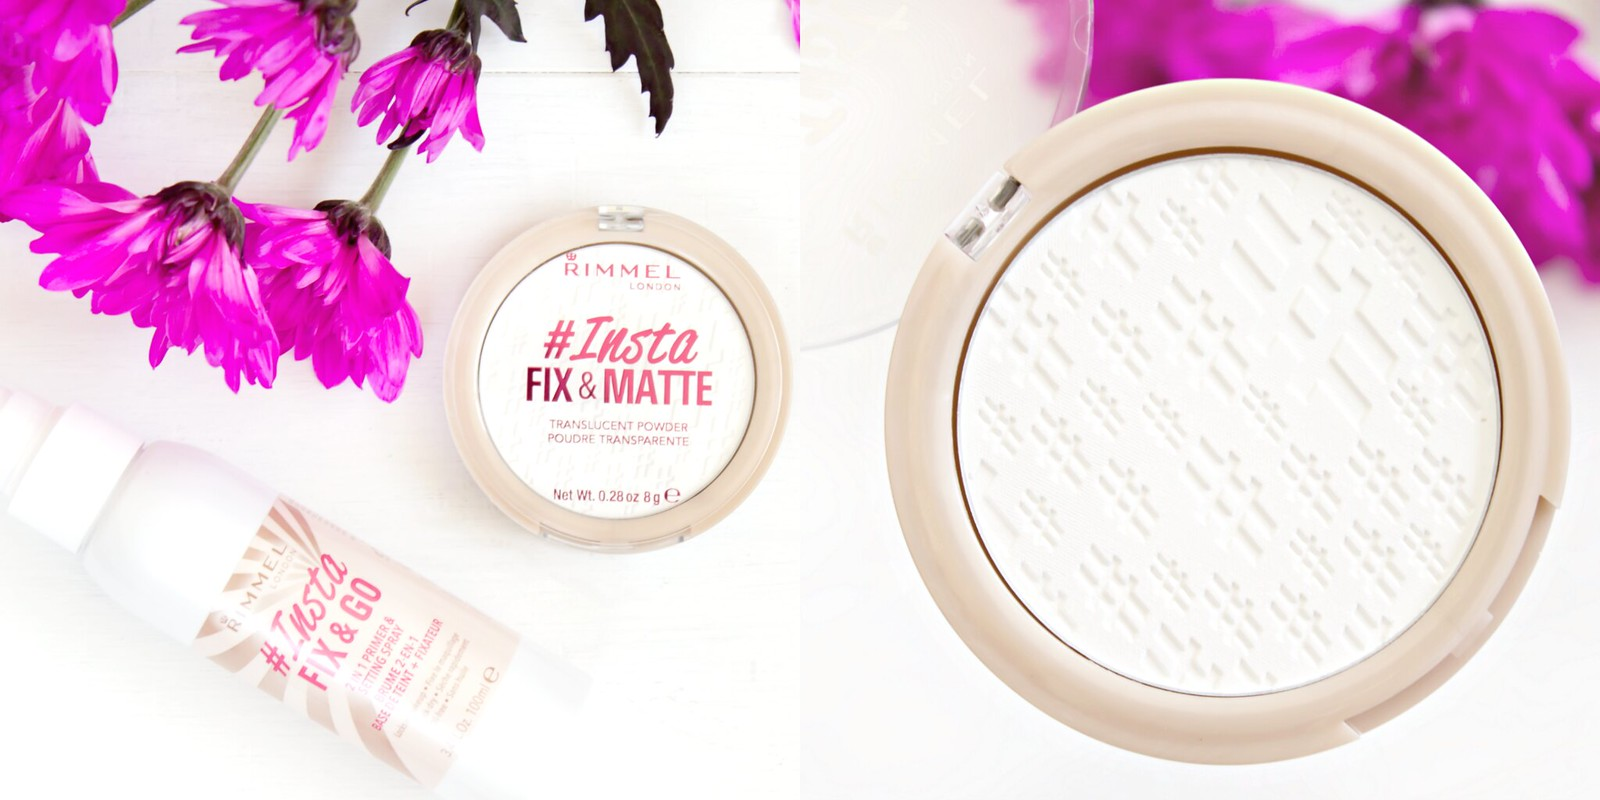 Insta Fix and Matte Setting Powder and Setting Spray